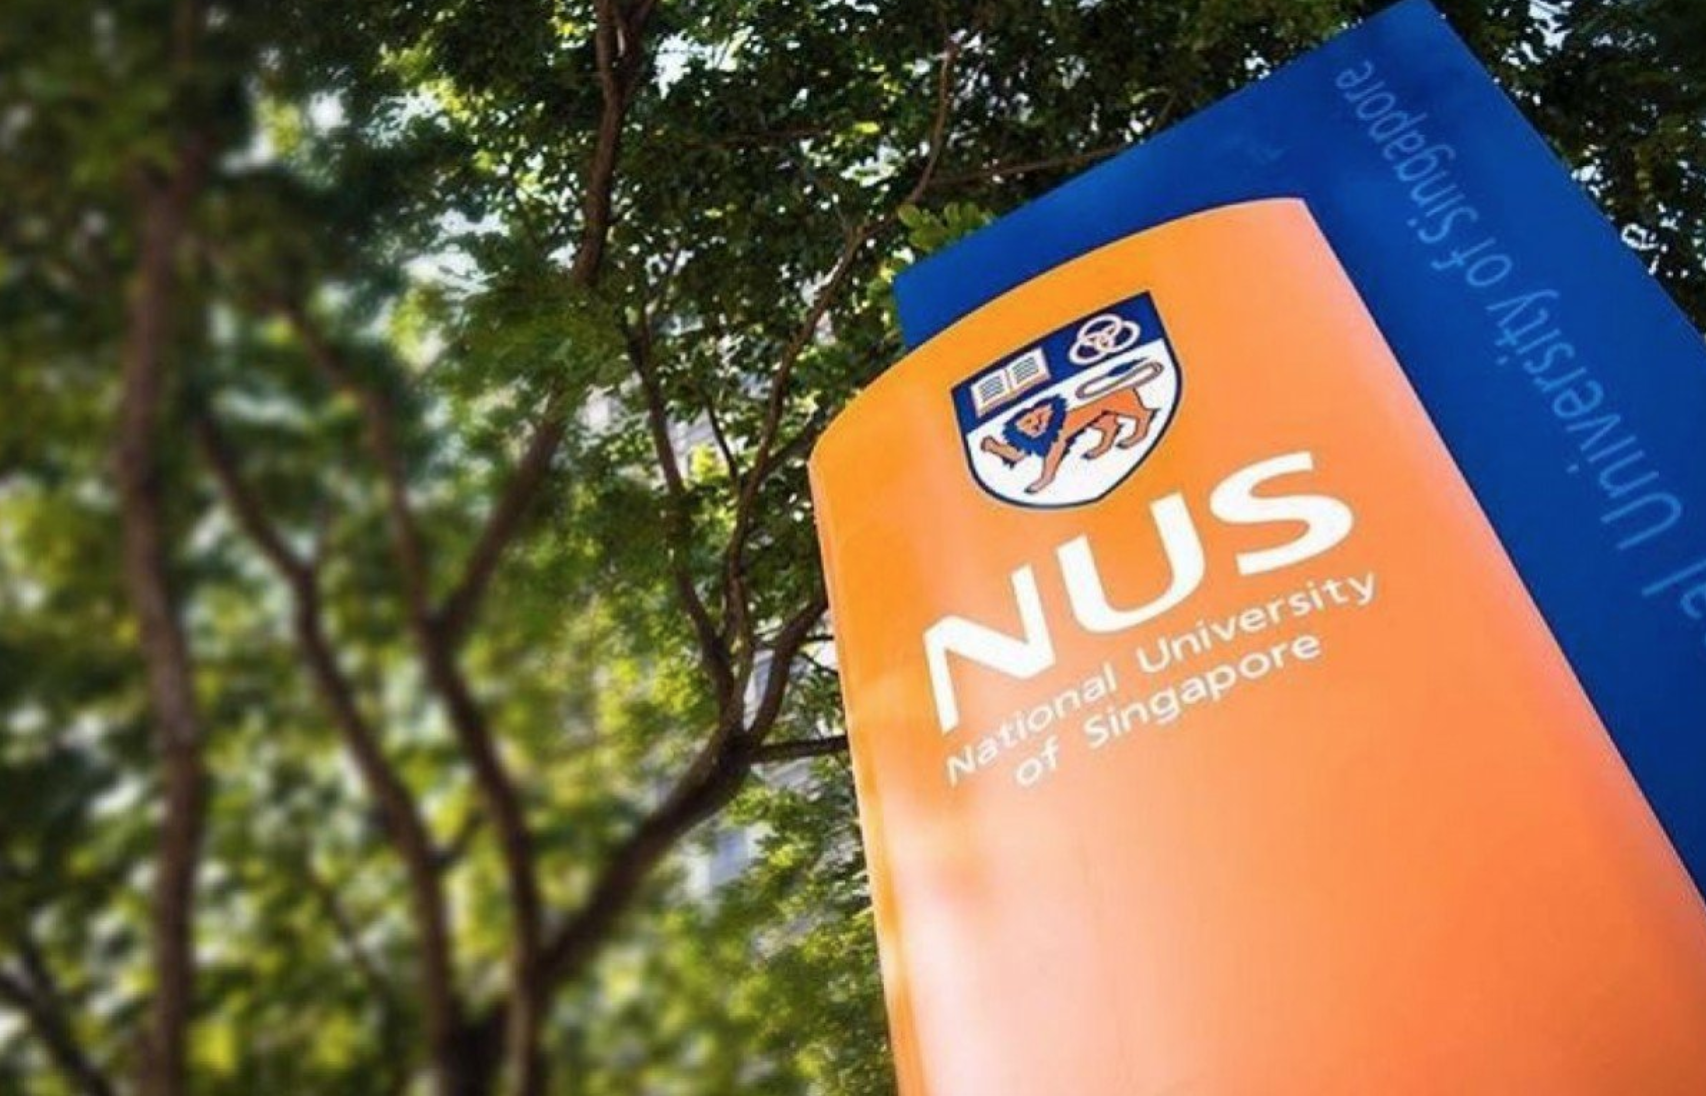 """NUS failed to deal with a """"peeping Tom"""" incident properly and is now revamping its sexual assault policies. Photo:  SCMP/Dewey Sim ."""